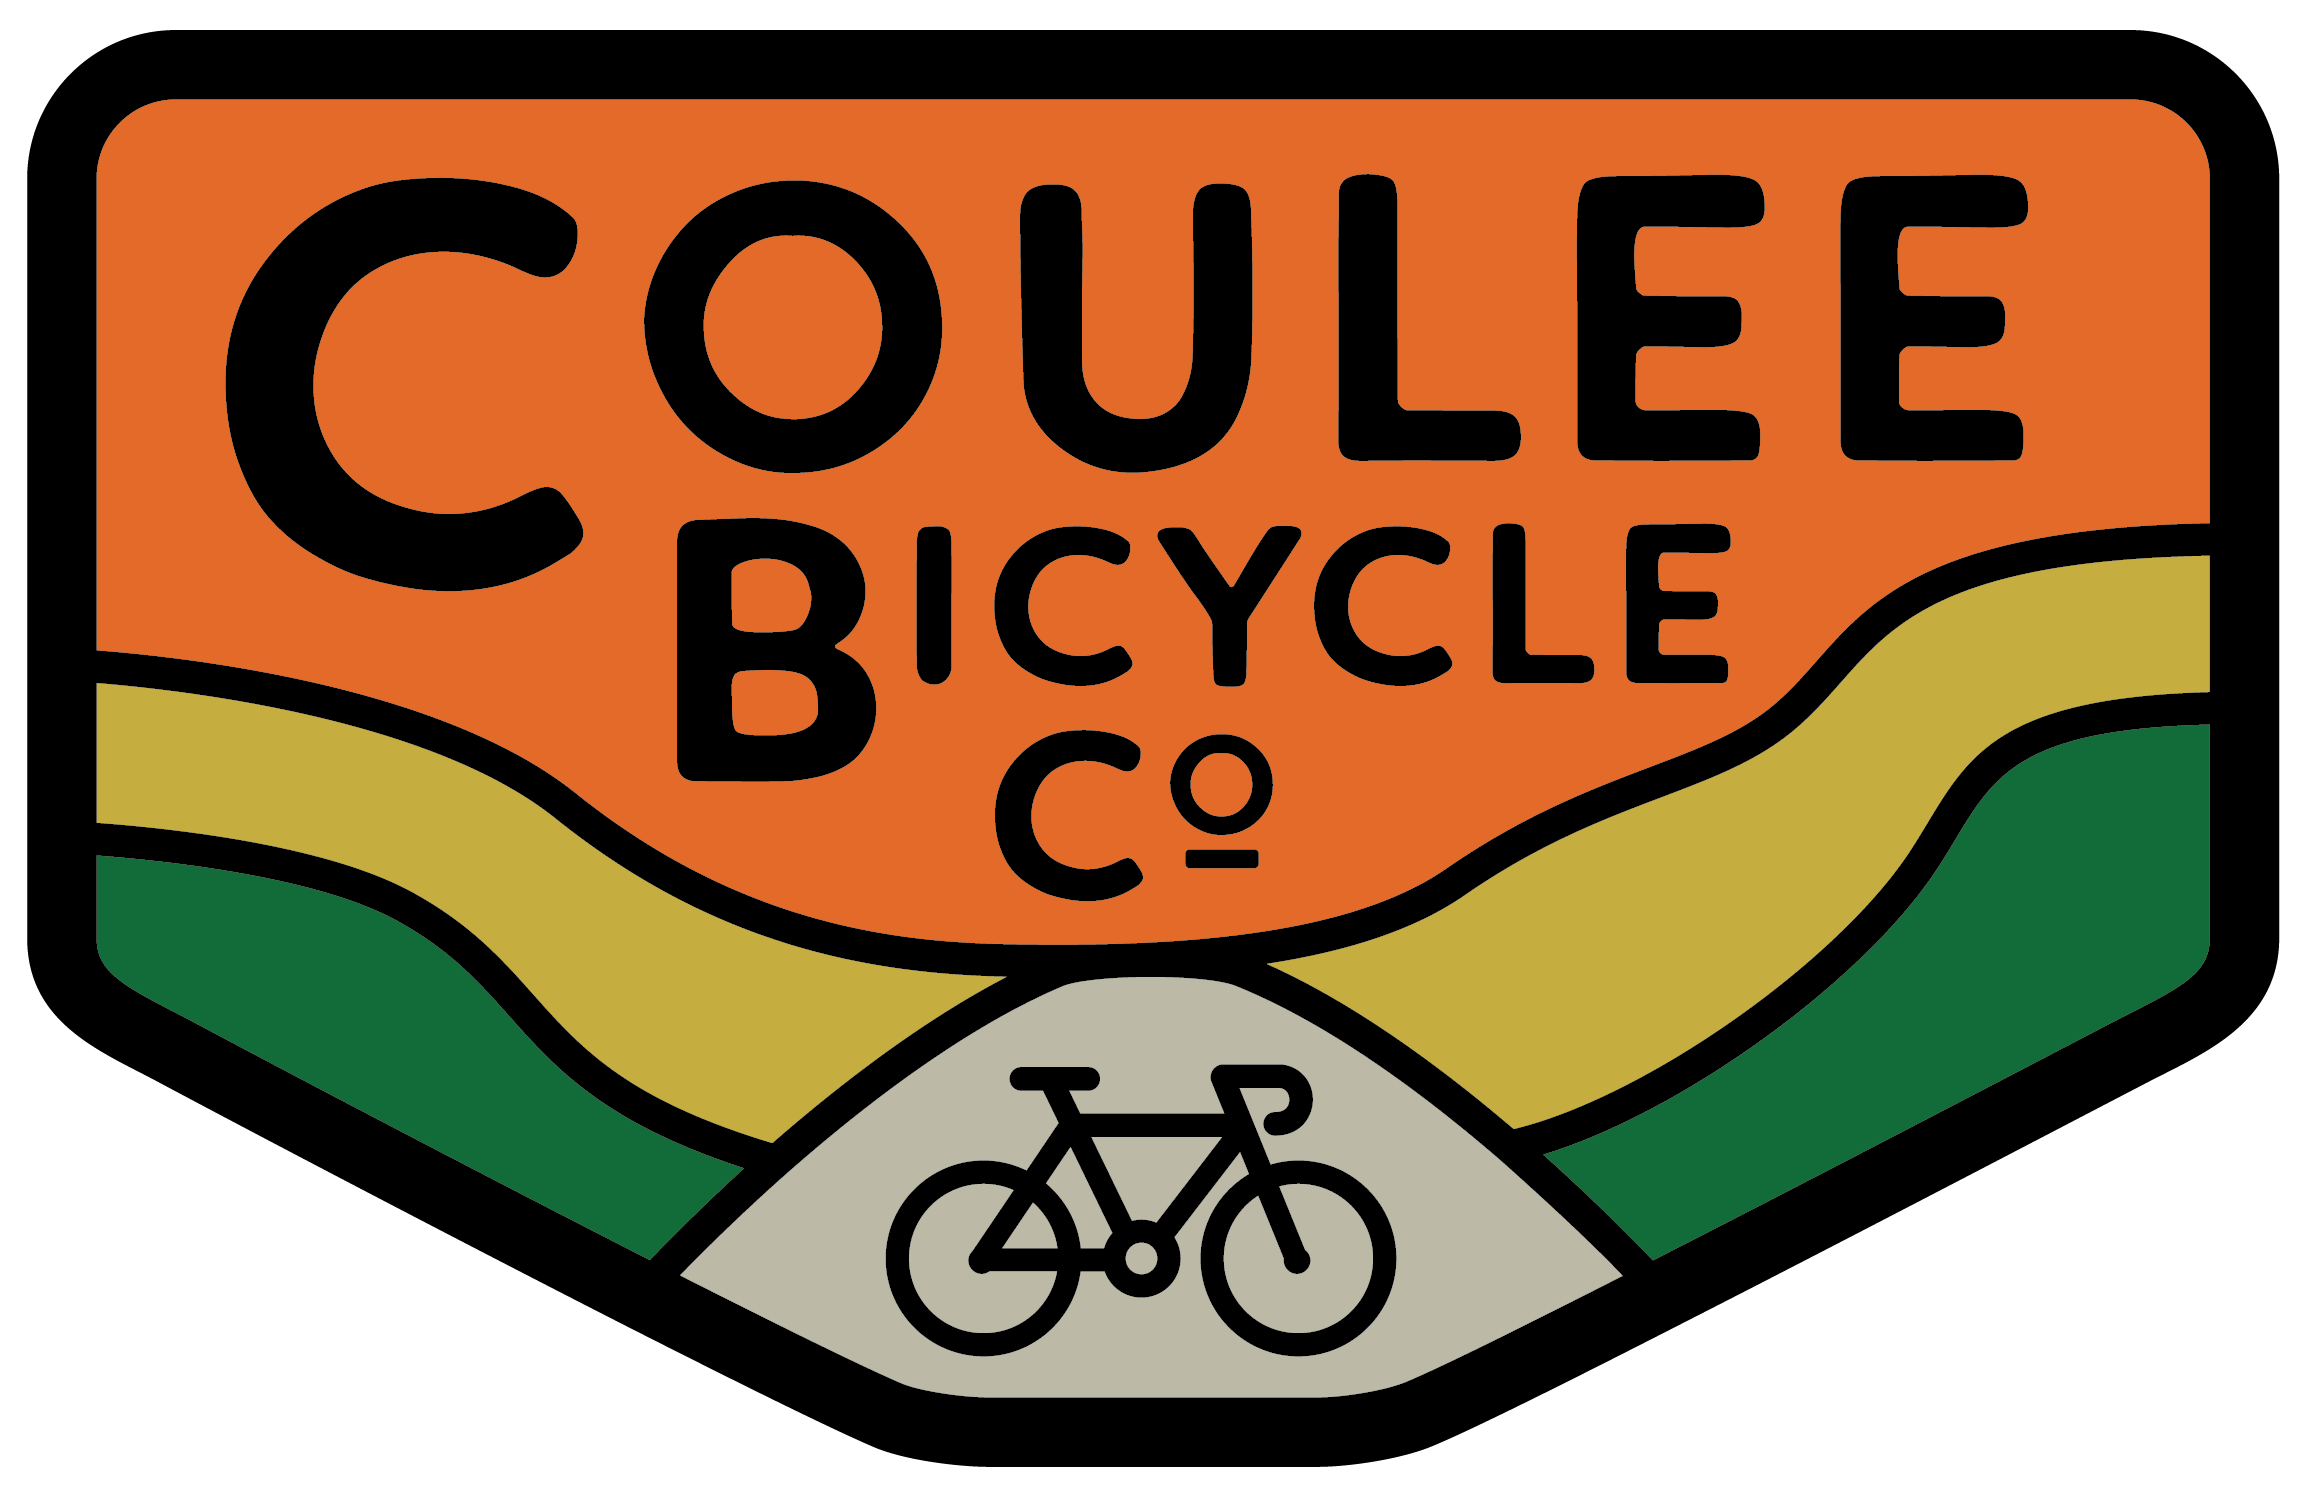 Coulee Bicycle Co Home Page